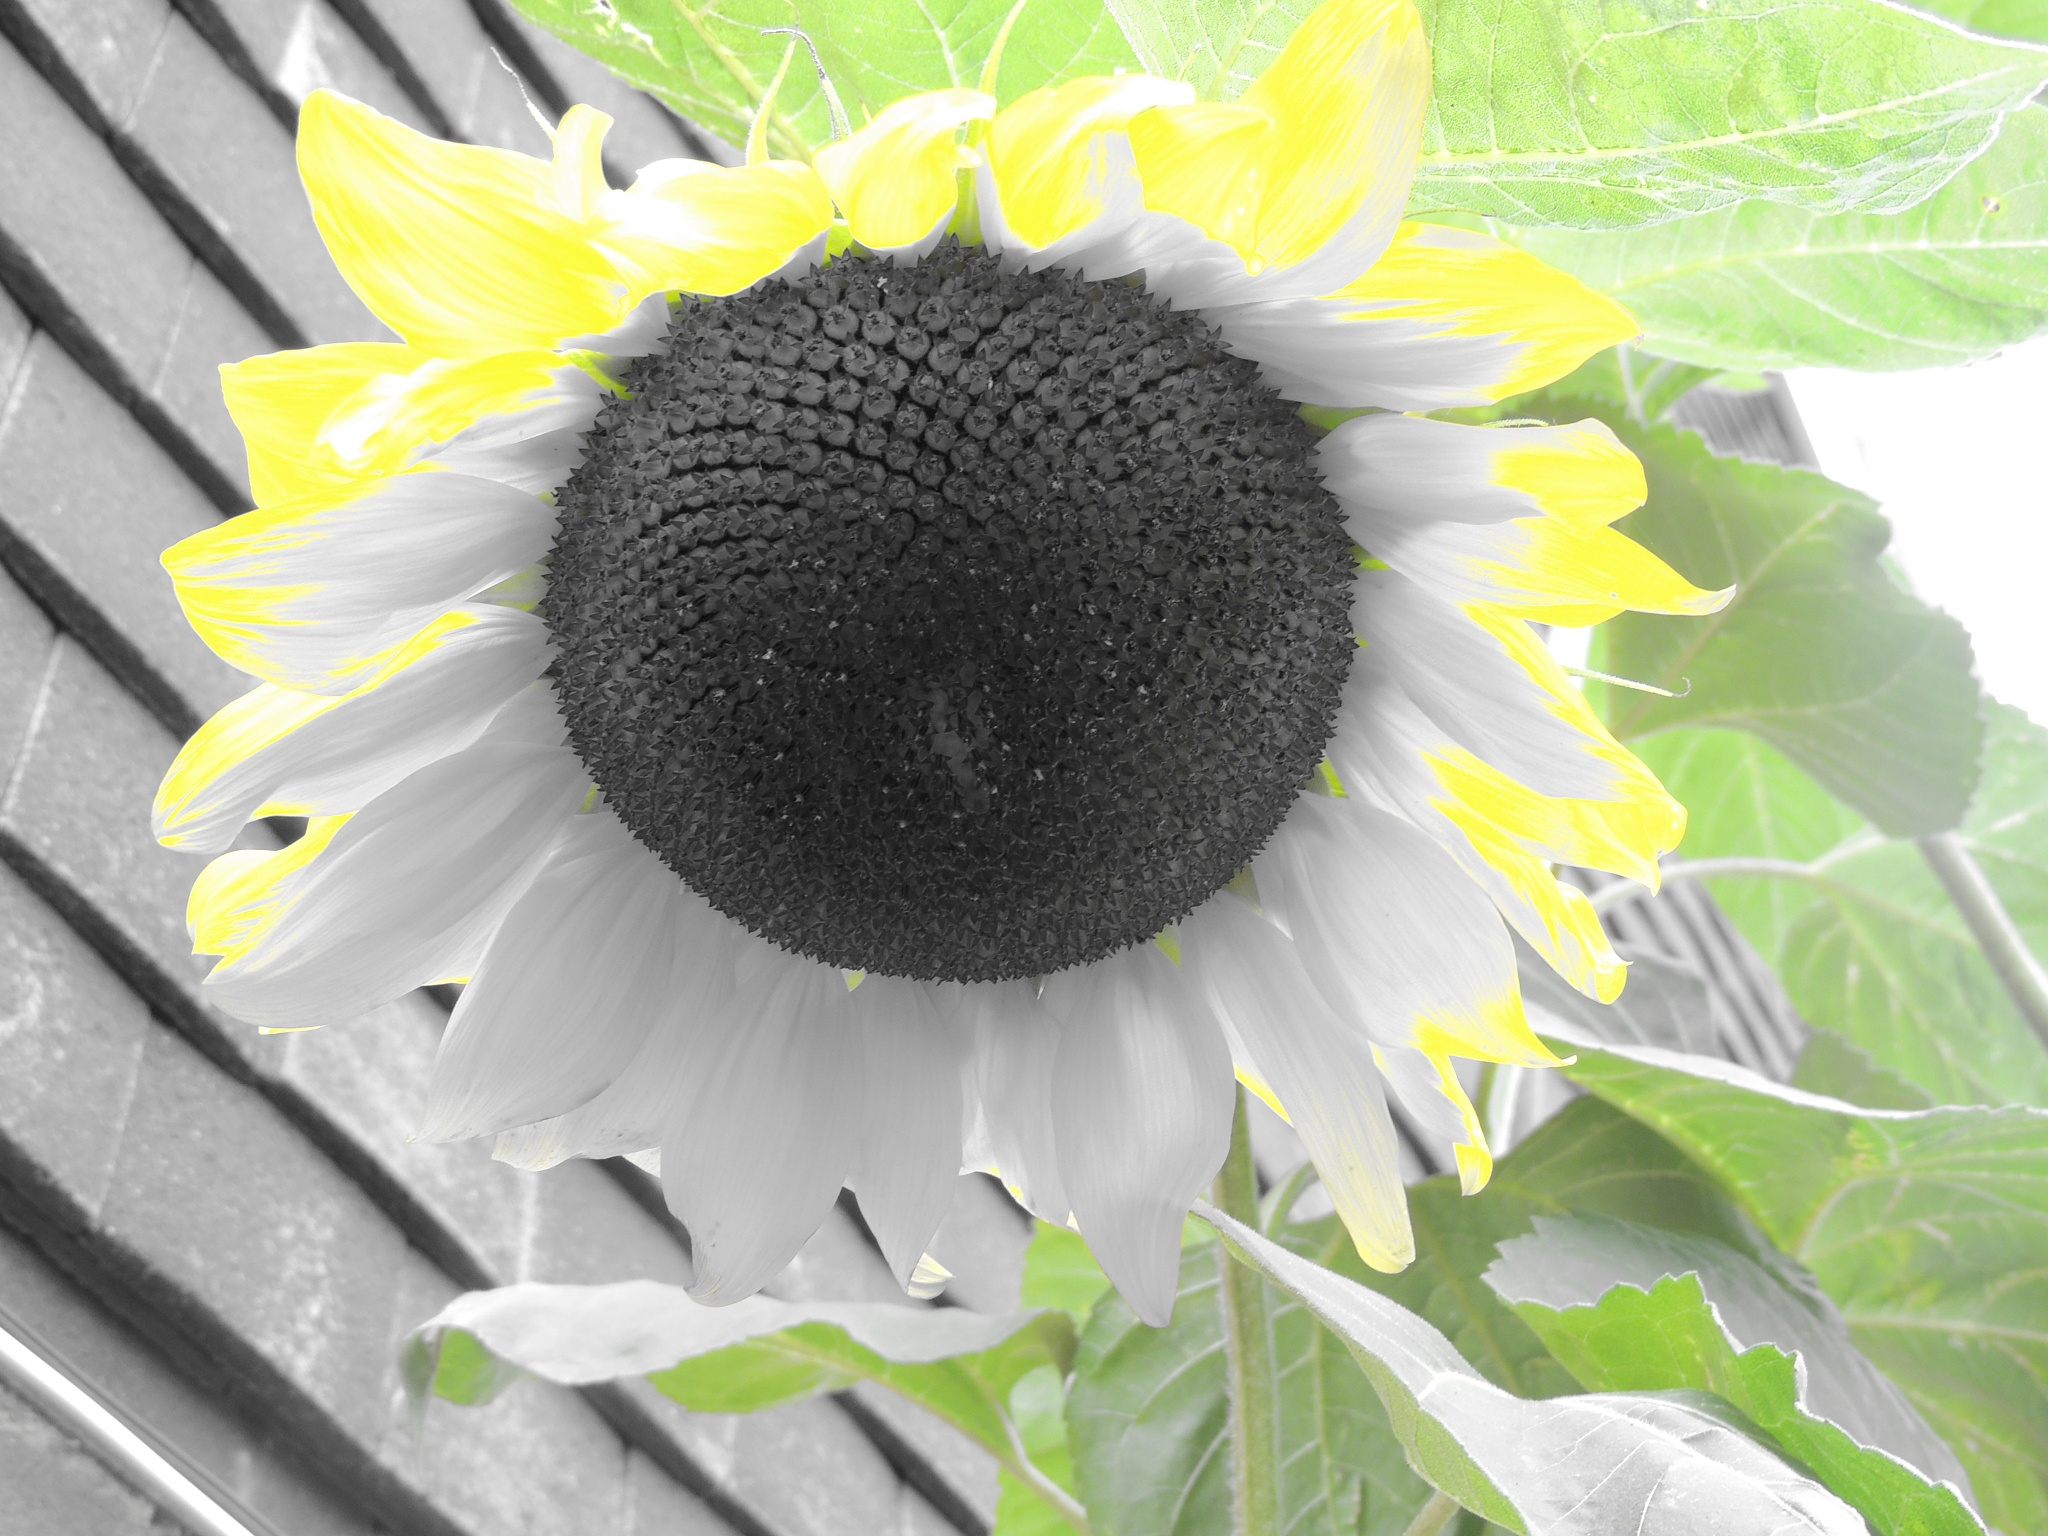 Sunflower by David Wagner